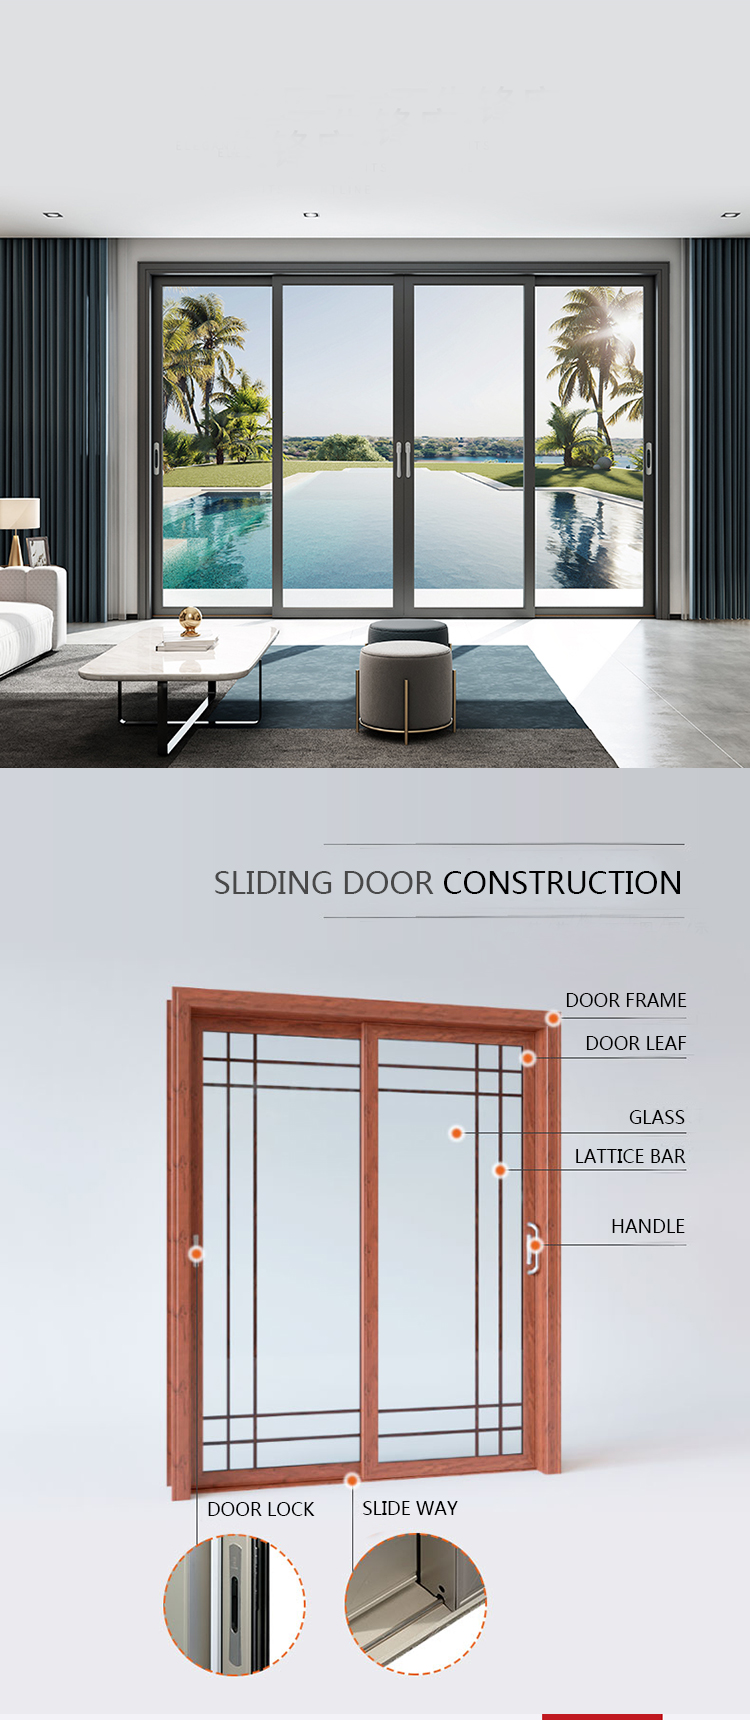 Aluminium frame 8 ft large industrial sliding glass doors bullet proof sliding glass doors